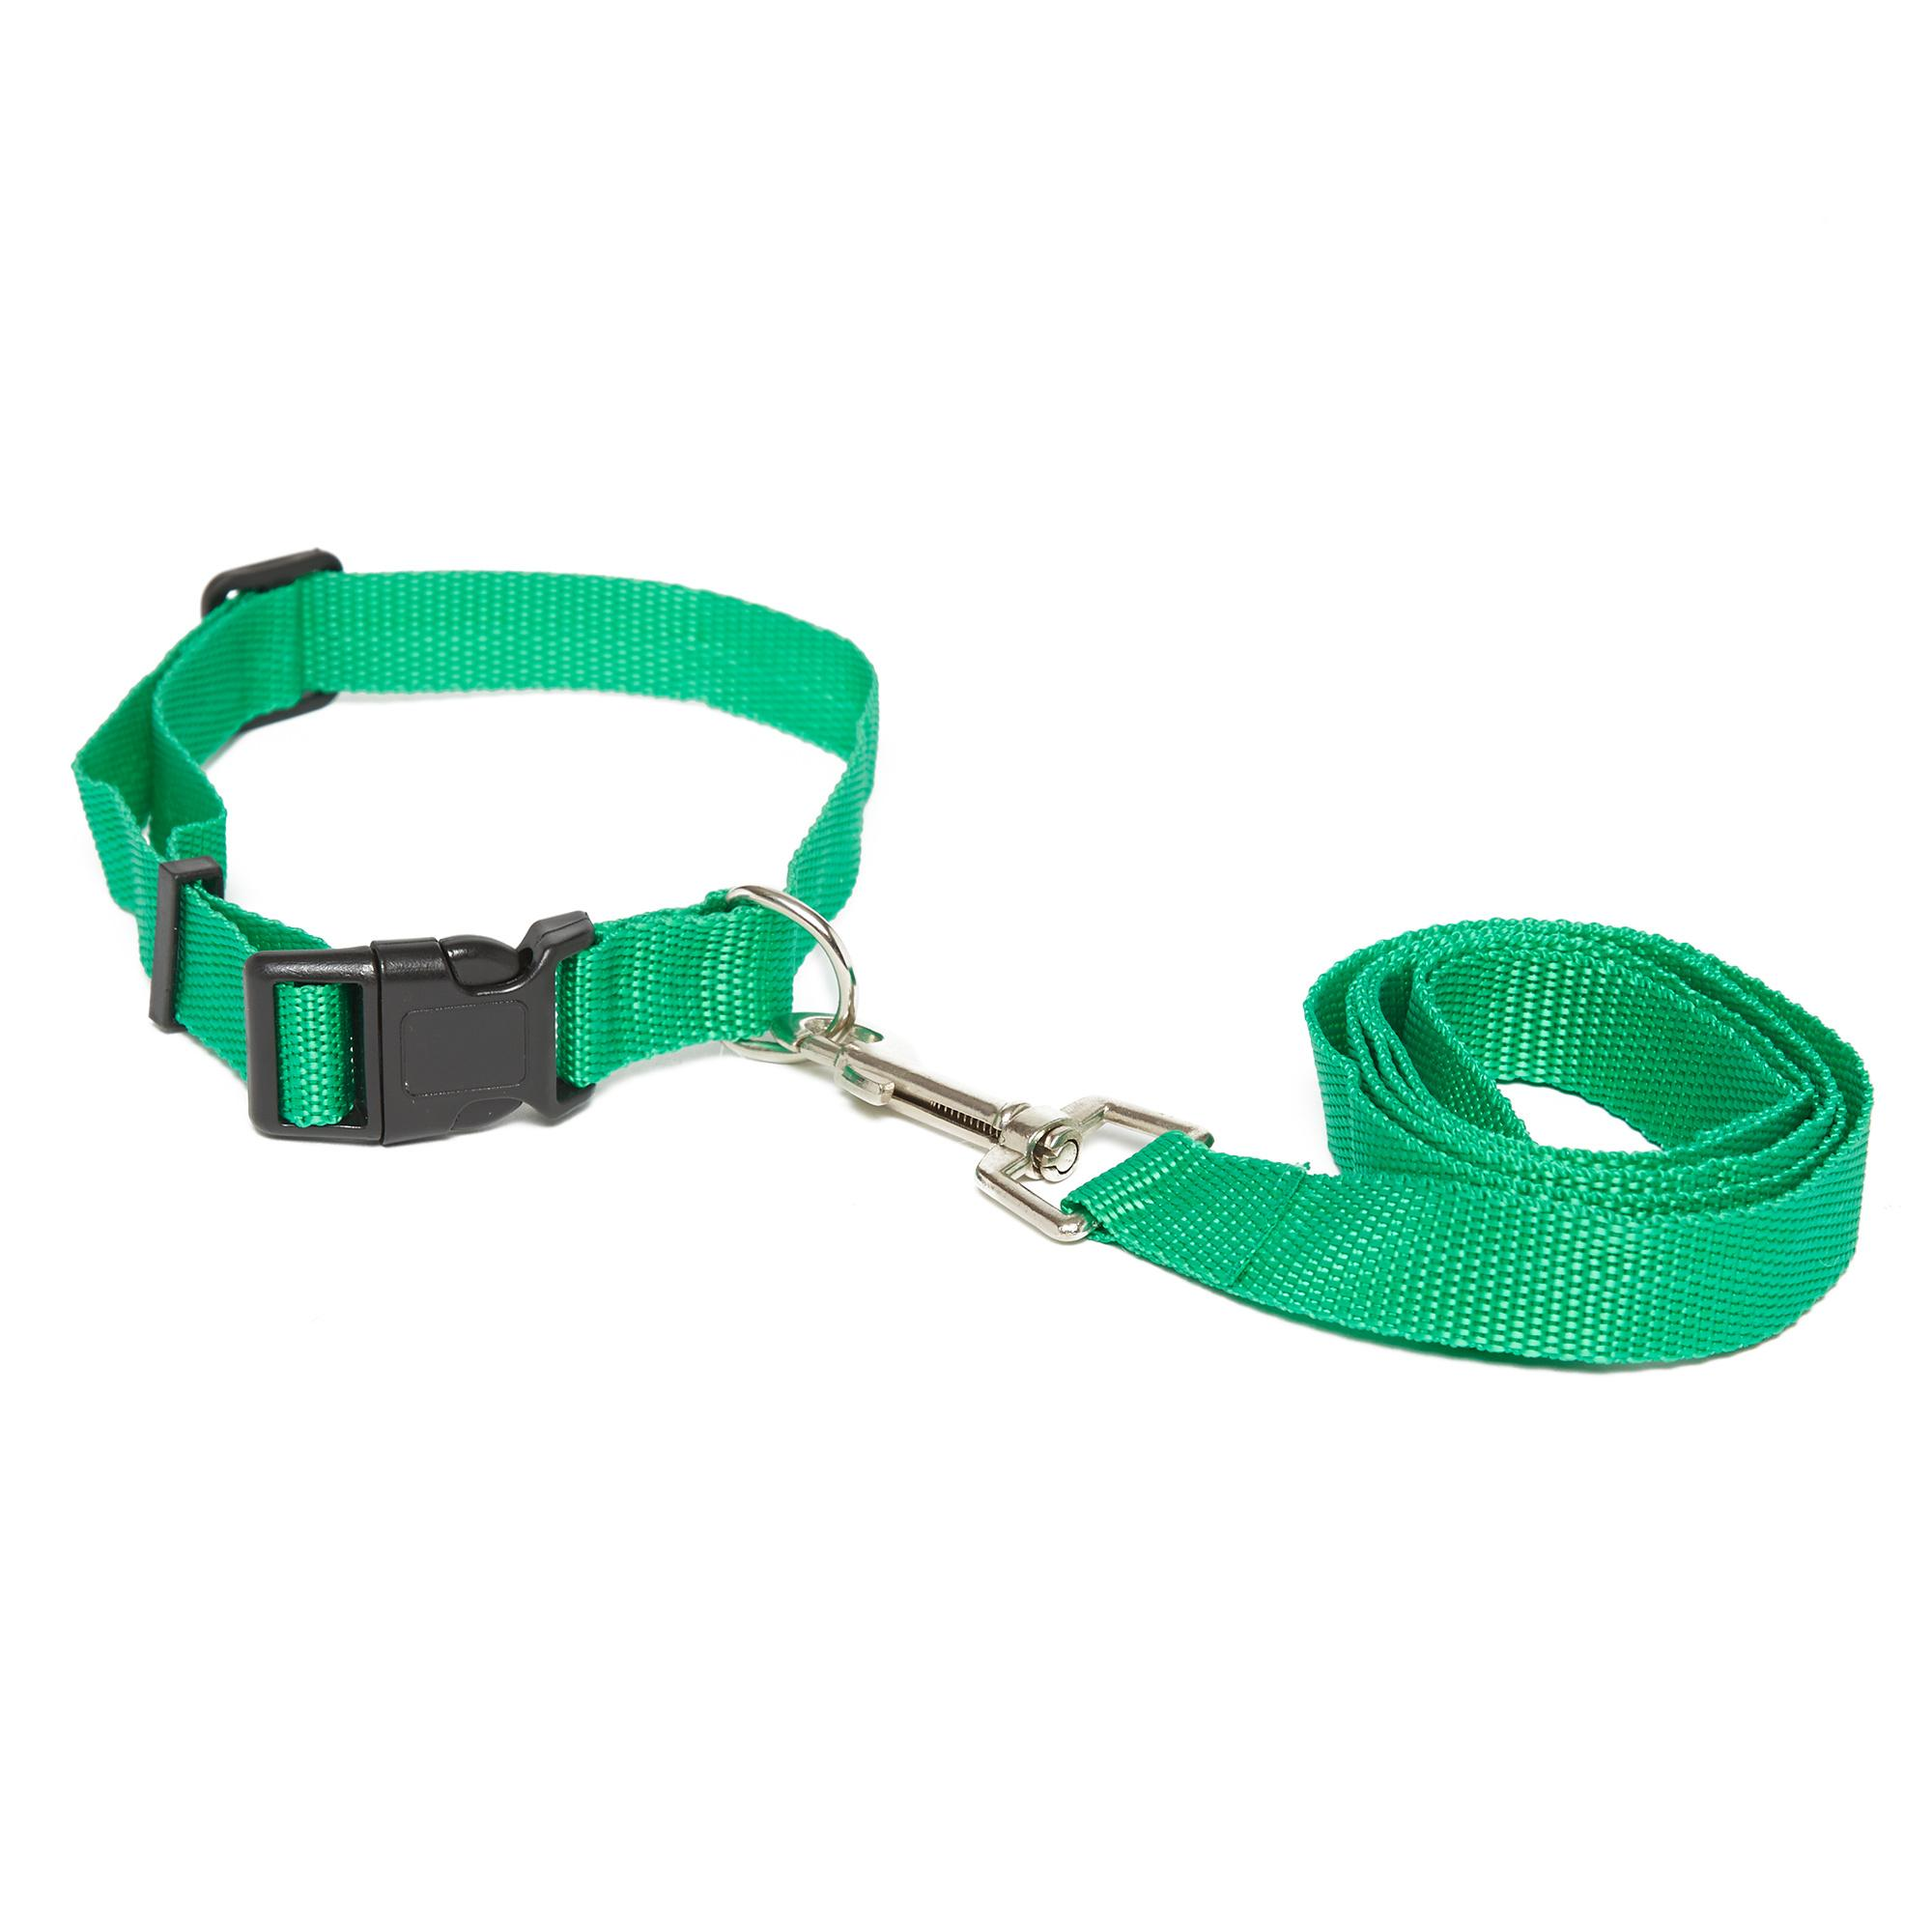 Image of Boyz Toys Dog Lead and Collar, Green